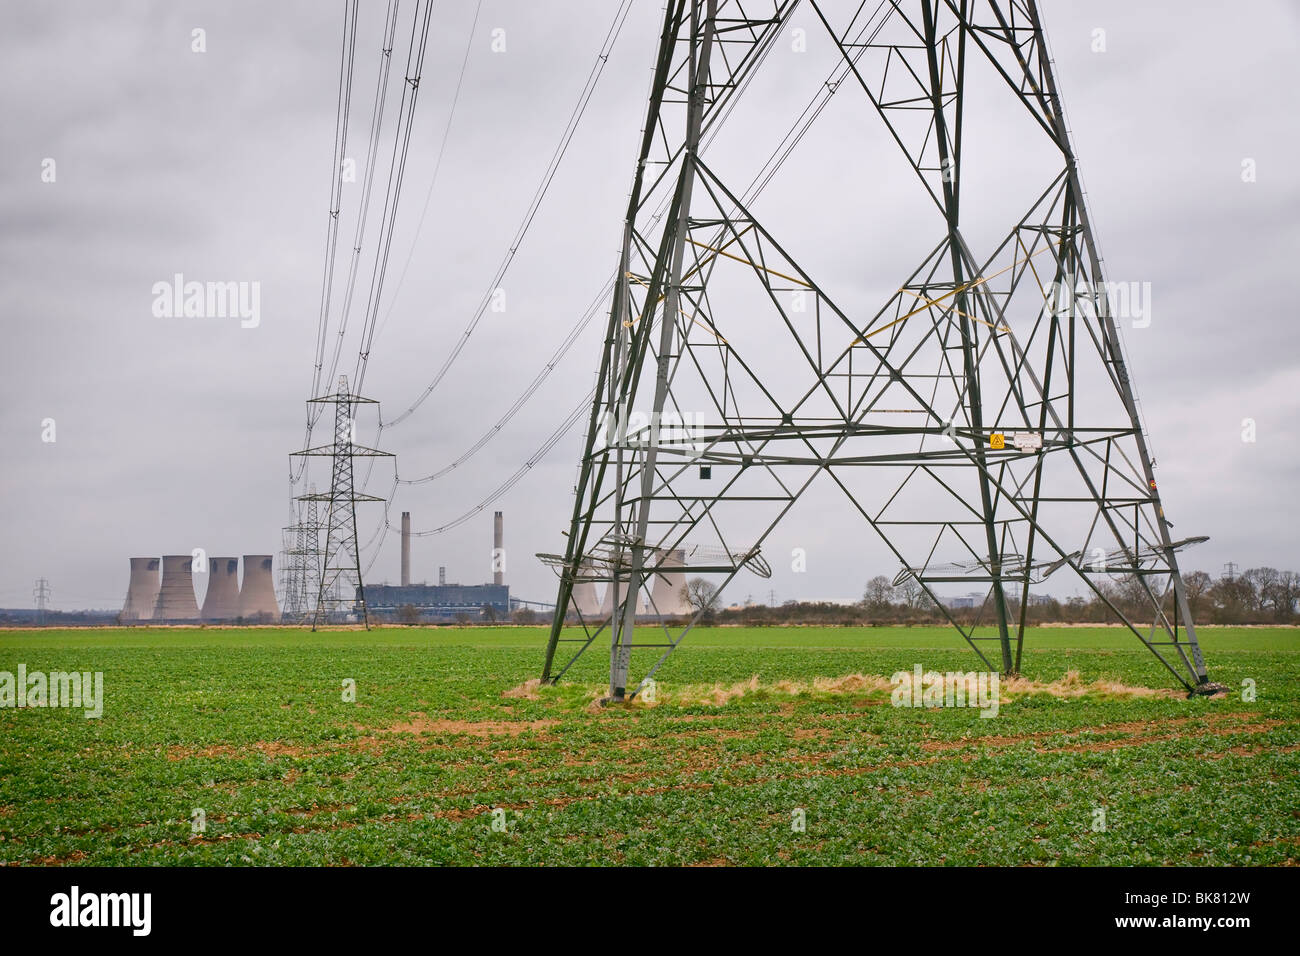 Electricity pylons taking overhead cables  from the West Burton Coal Fired Power Station in Nottinghamshire. - Stock Image